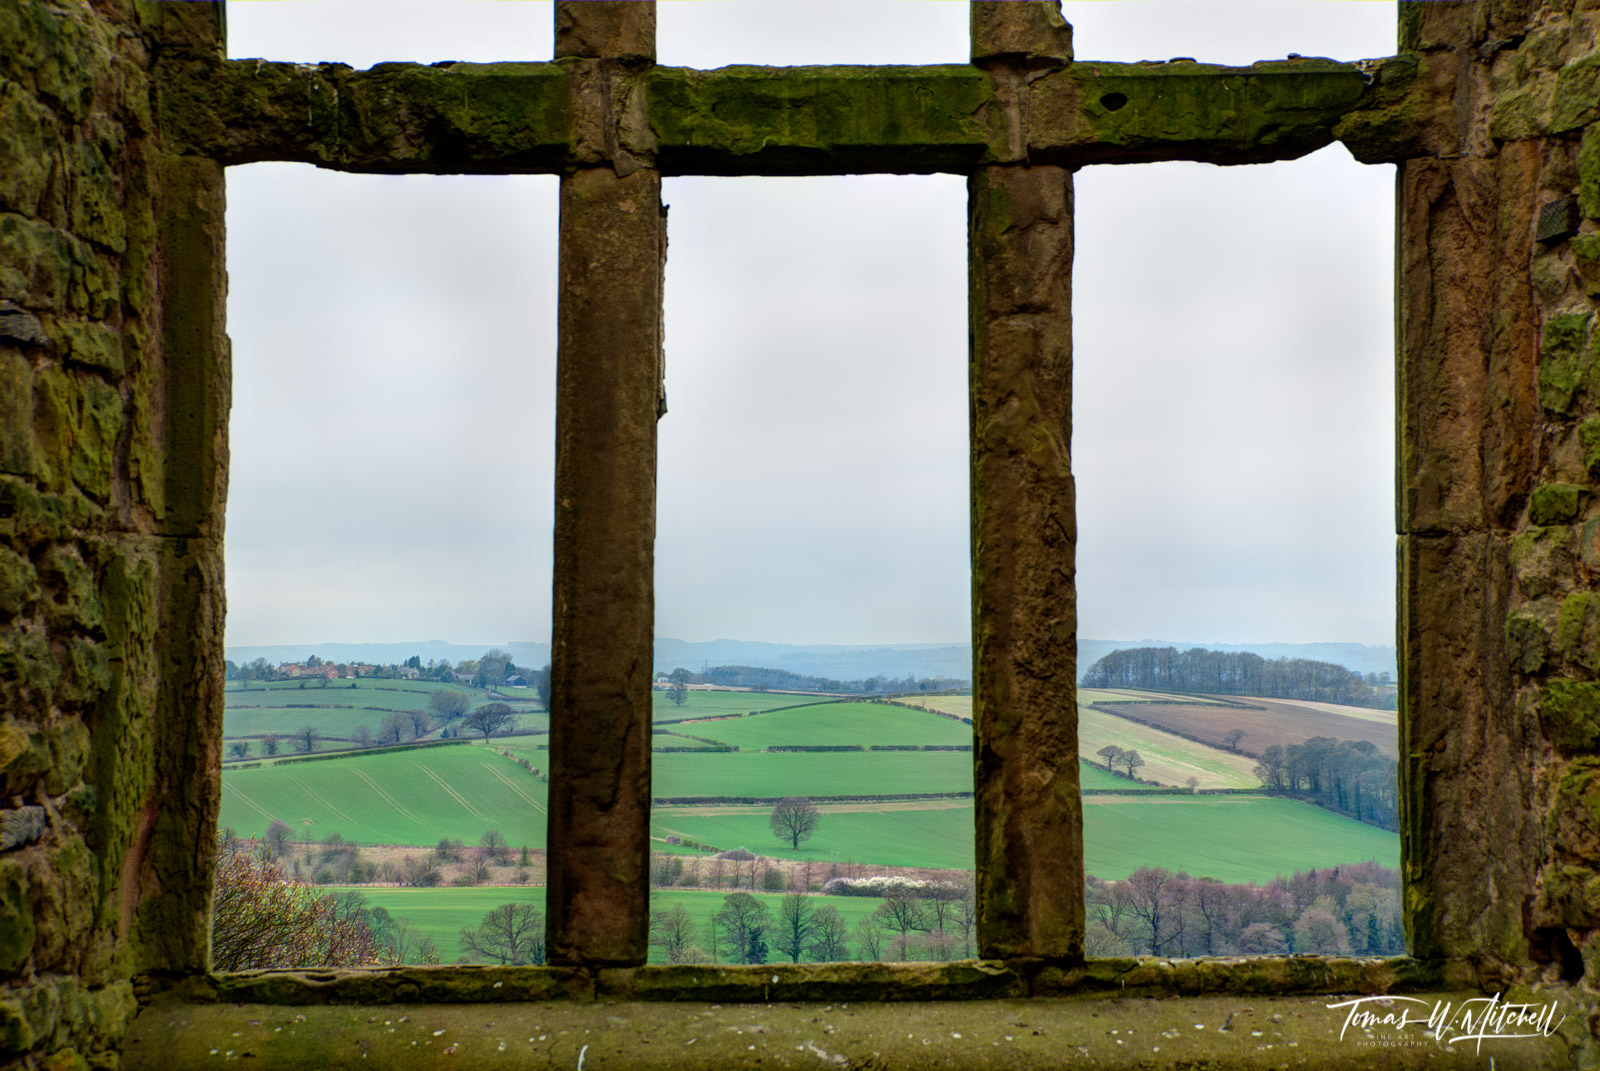 limited edition, museum grade, fine art, prints, hardwick hall, old, Elizabethan, mansion, old hall, photograph, england, english countryside, window , photo